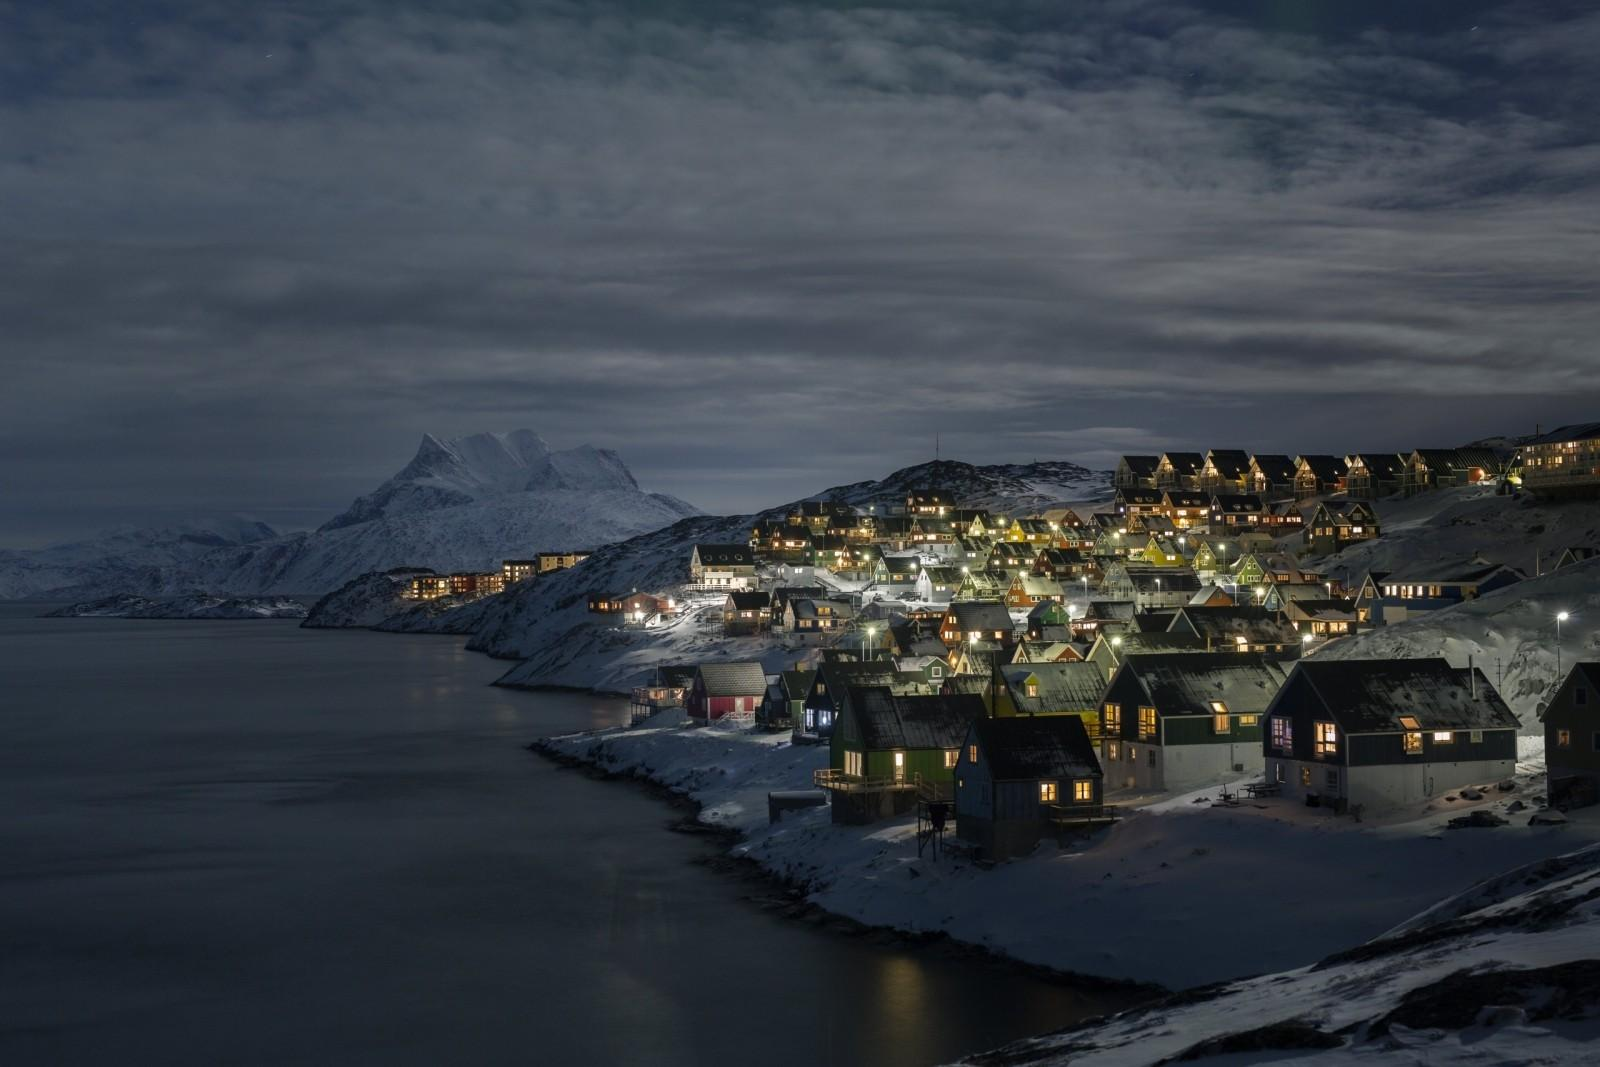 Before-One of the famous viewpoint in Nuuk, the view from Myggedalen